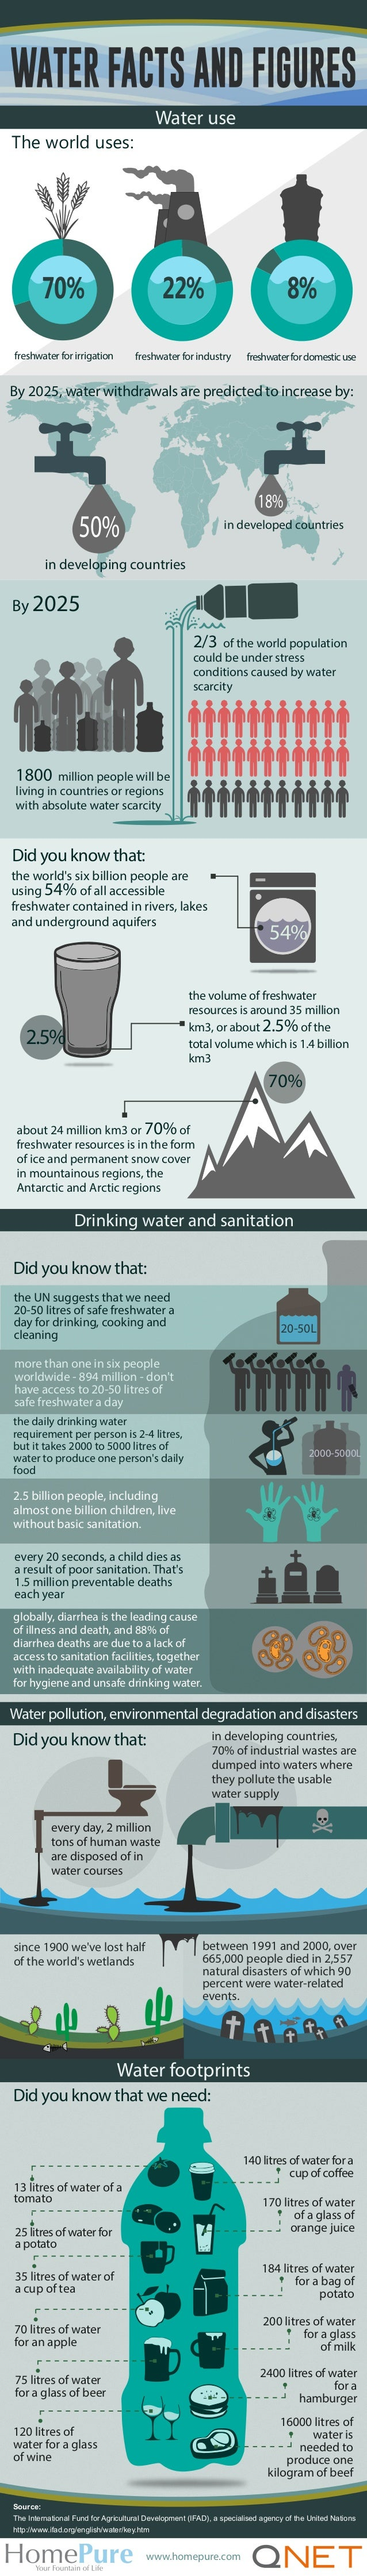 WATER FACTS AND FIGURES Water use The world uses:  70%  22%  8%  freshwater for irrigation  freshwater for industry  fresh...